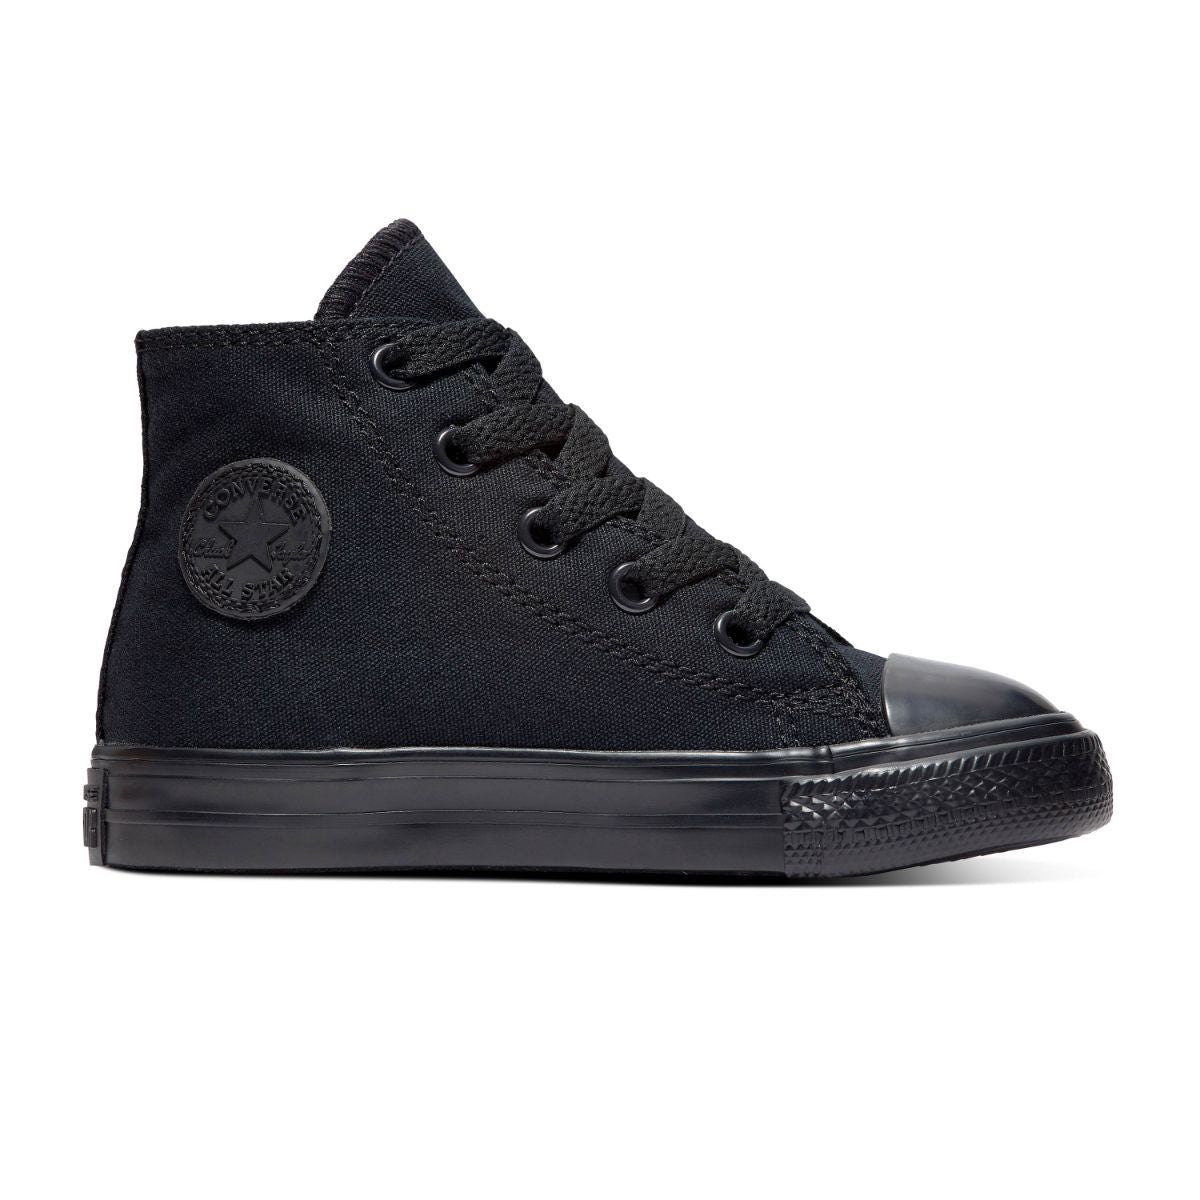 Toddler Chuck Taylor All Star Black High Top